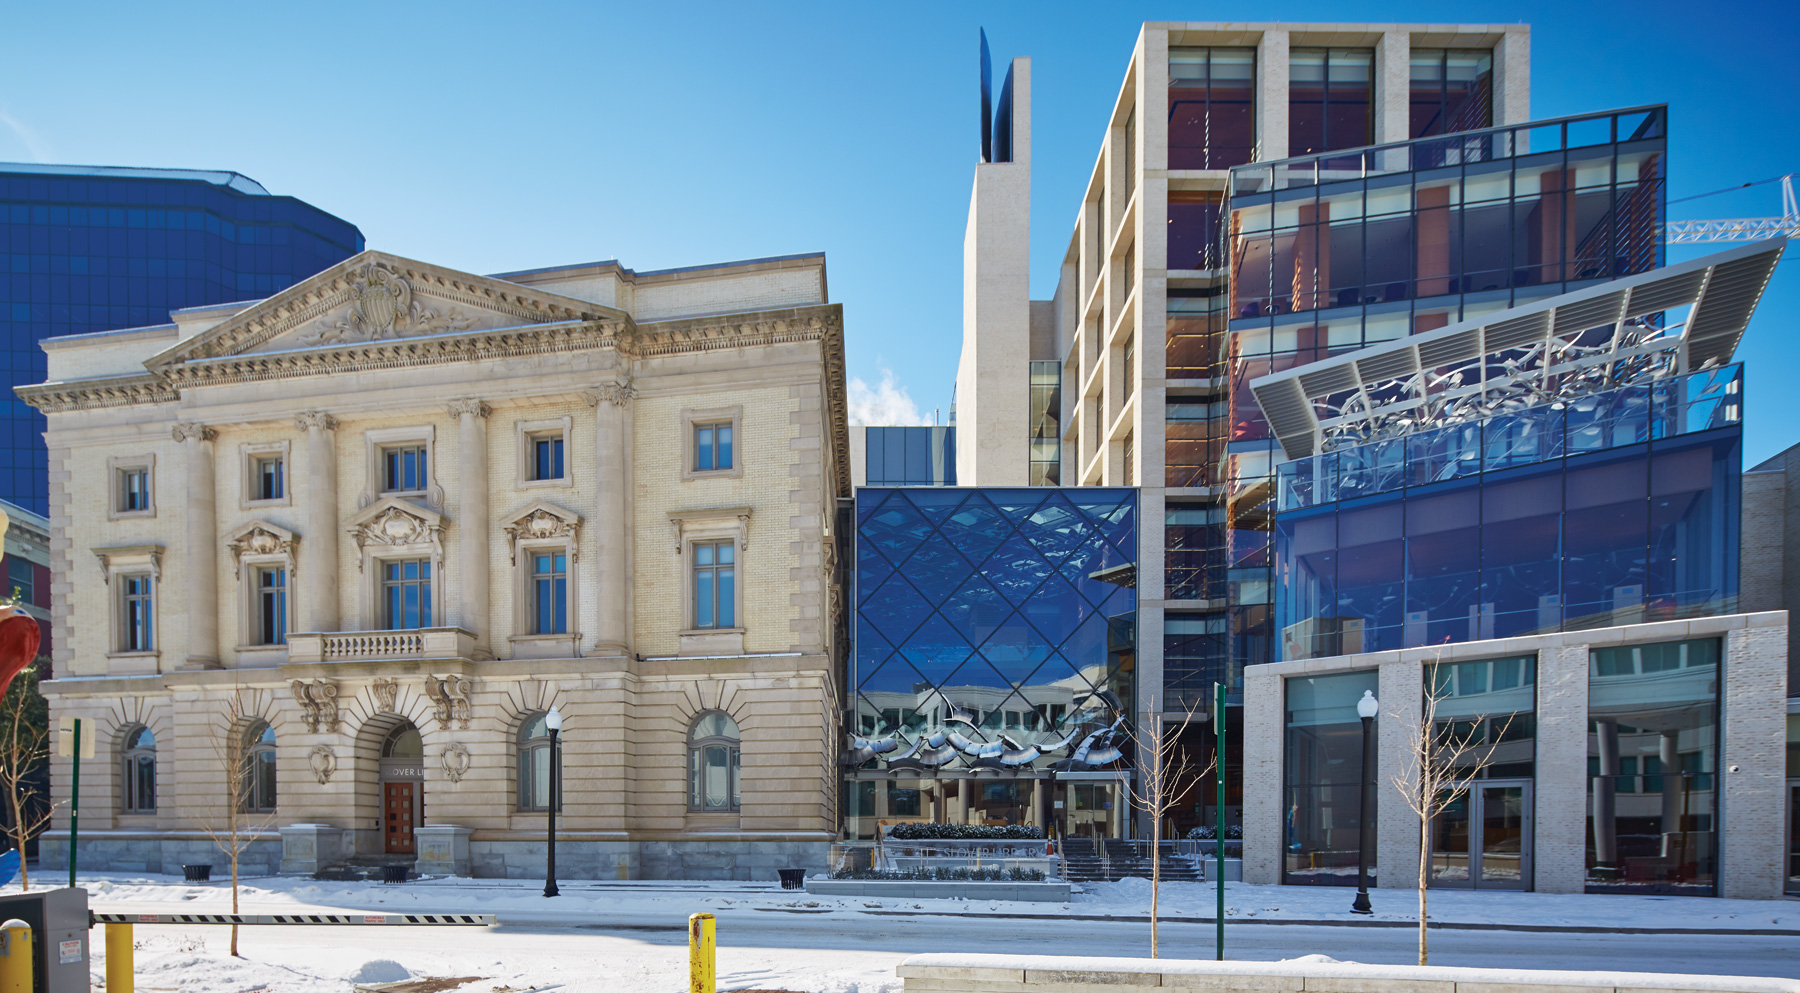 The exterior of Slover Library symbolizes the transition from old to new.